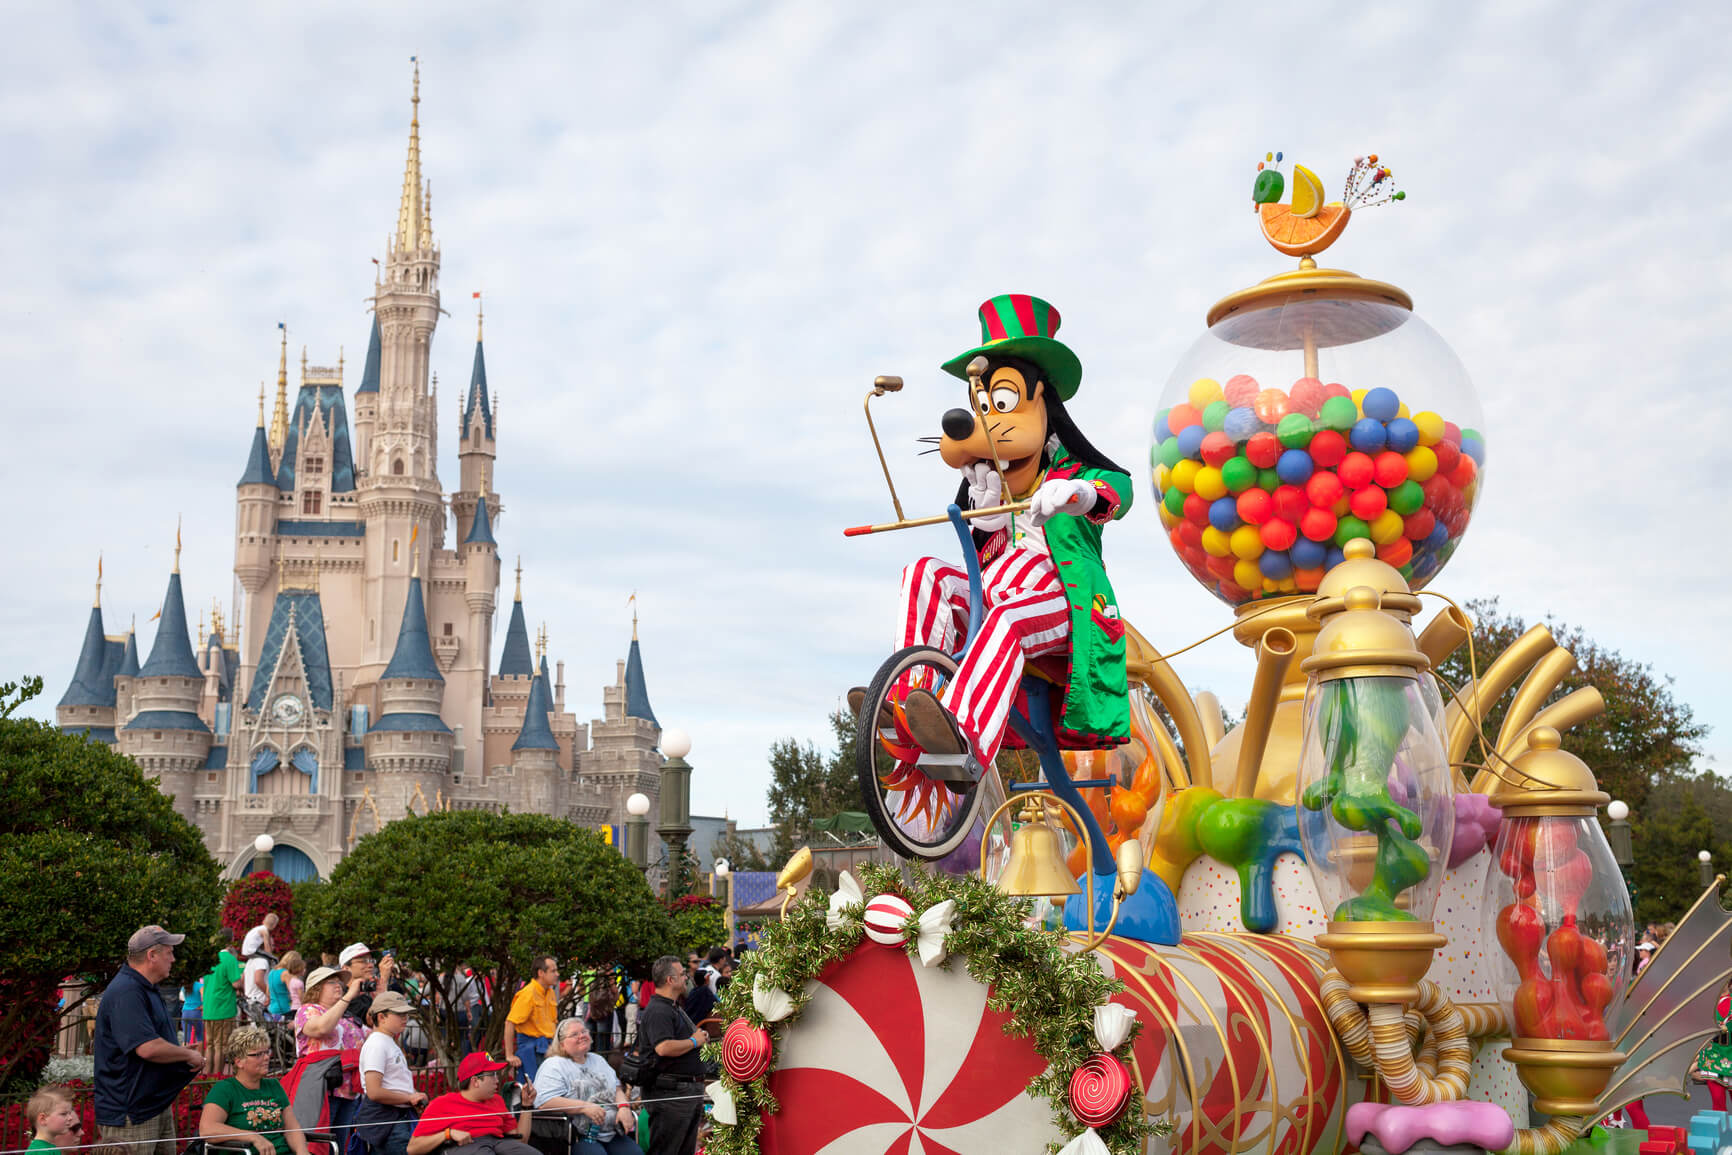 Non-stop from Los Angeles to Orlando, Florida (& vice versa) for only $196 roundtrip